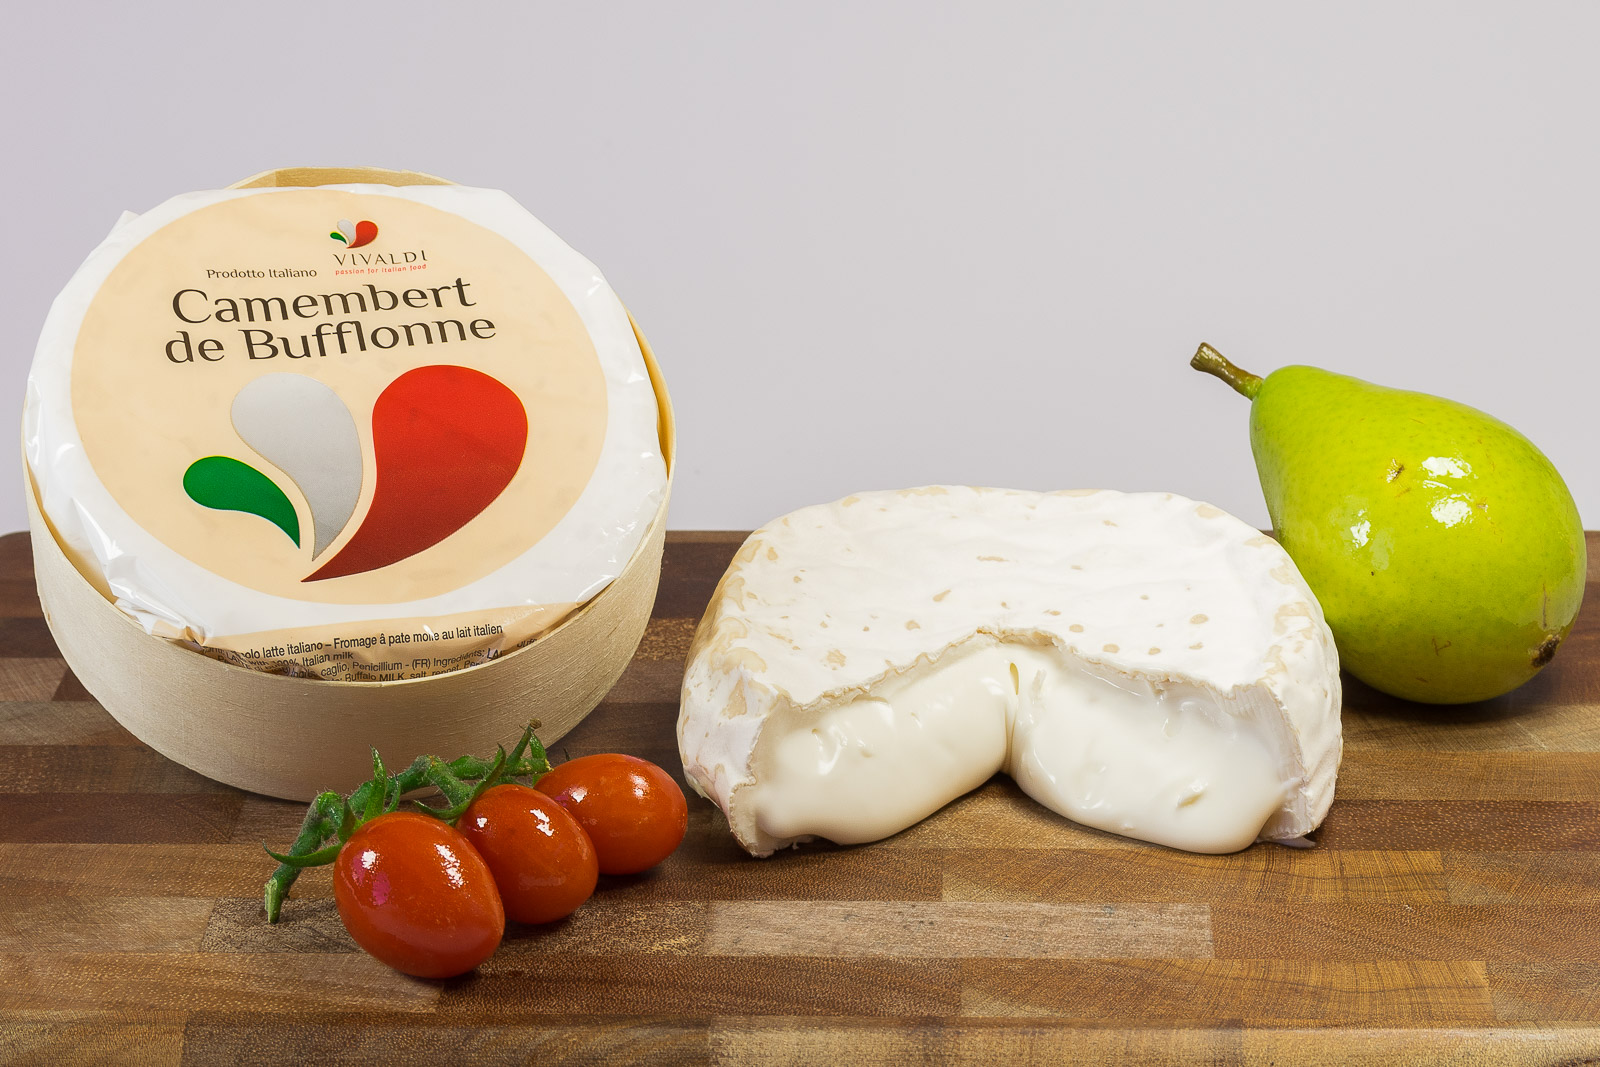 Camembert de Bufflonne